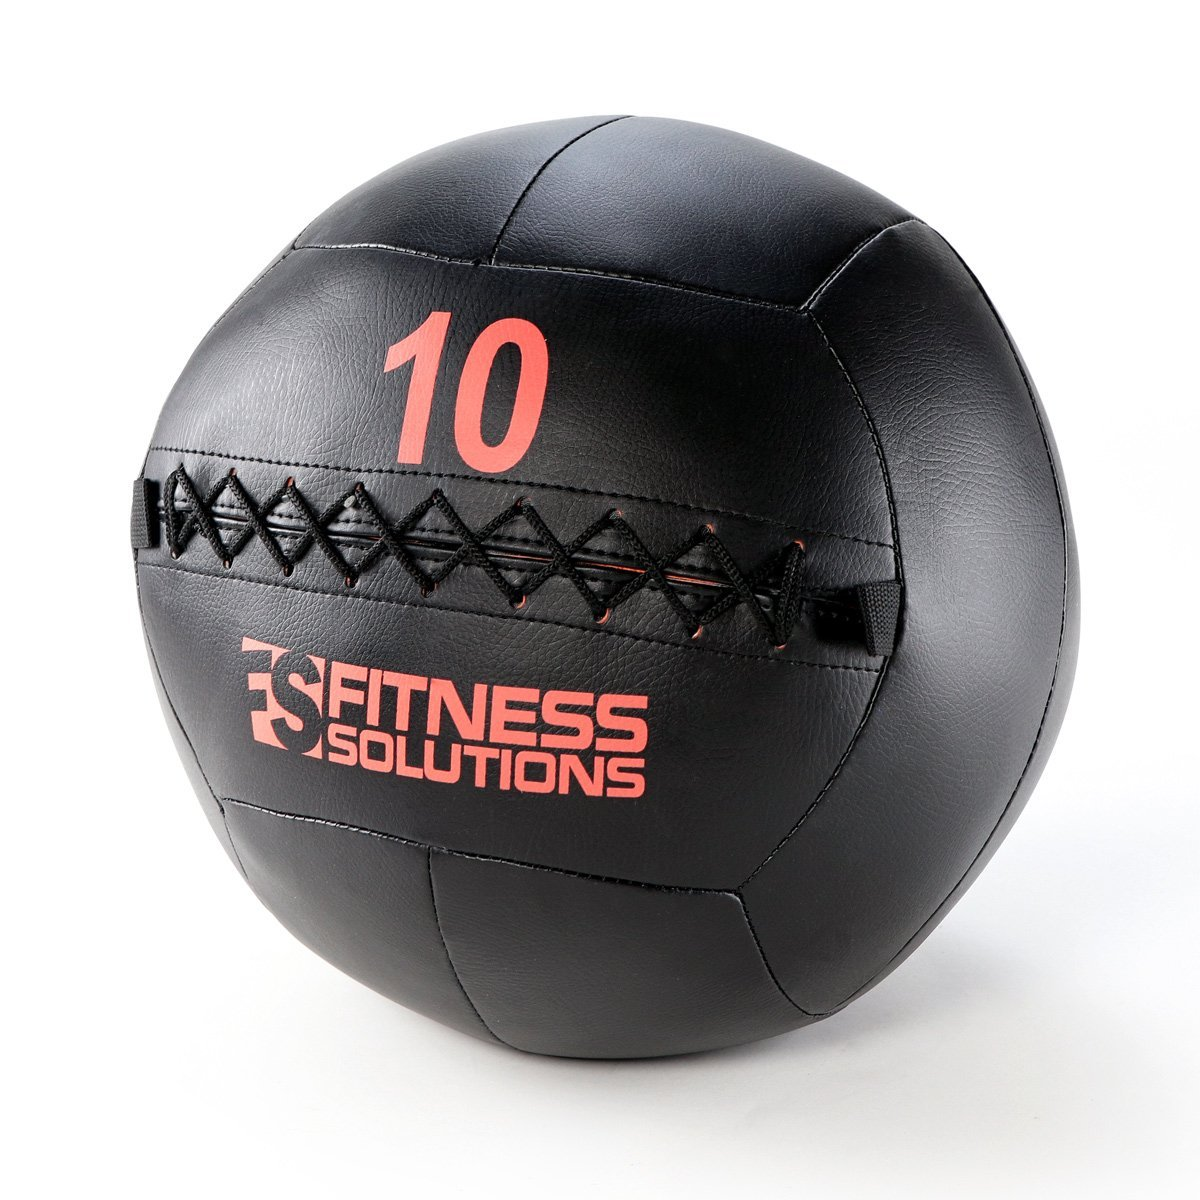 Fitness Solutions Wall Ball (10 LB)